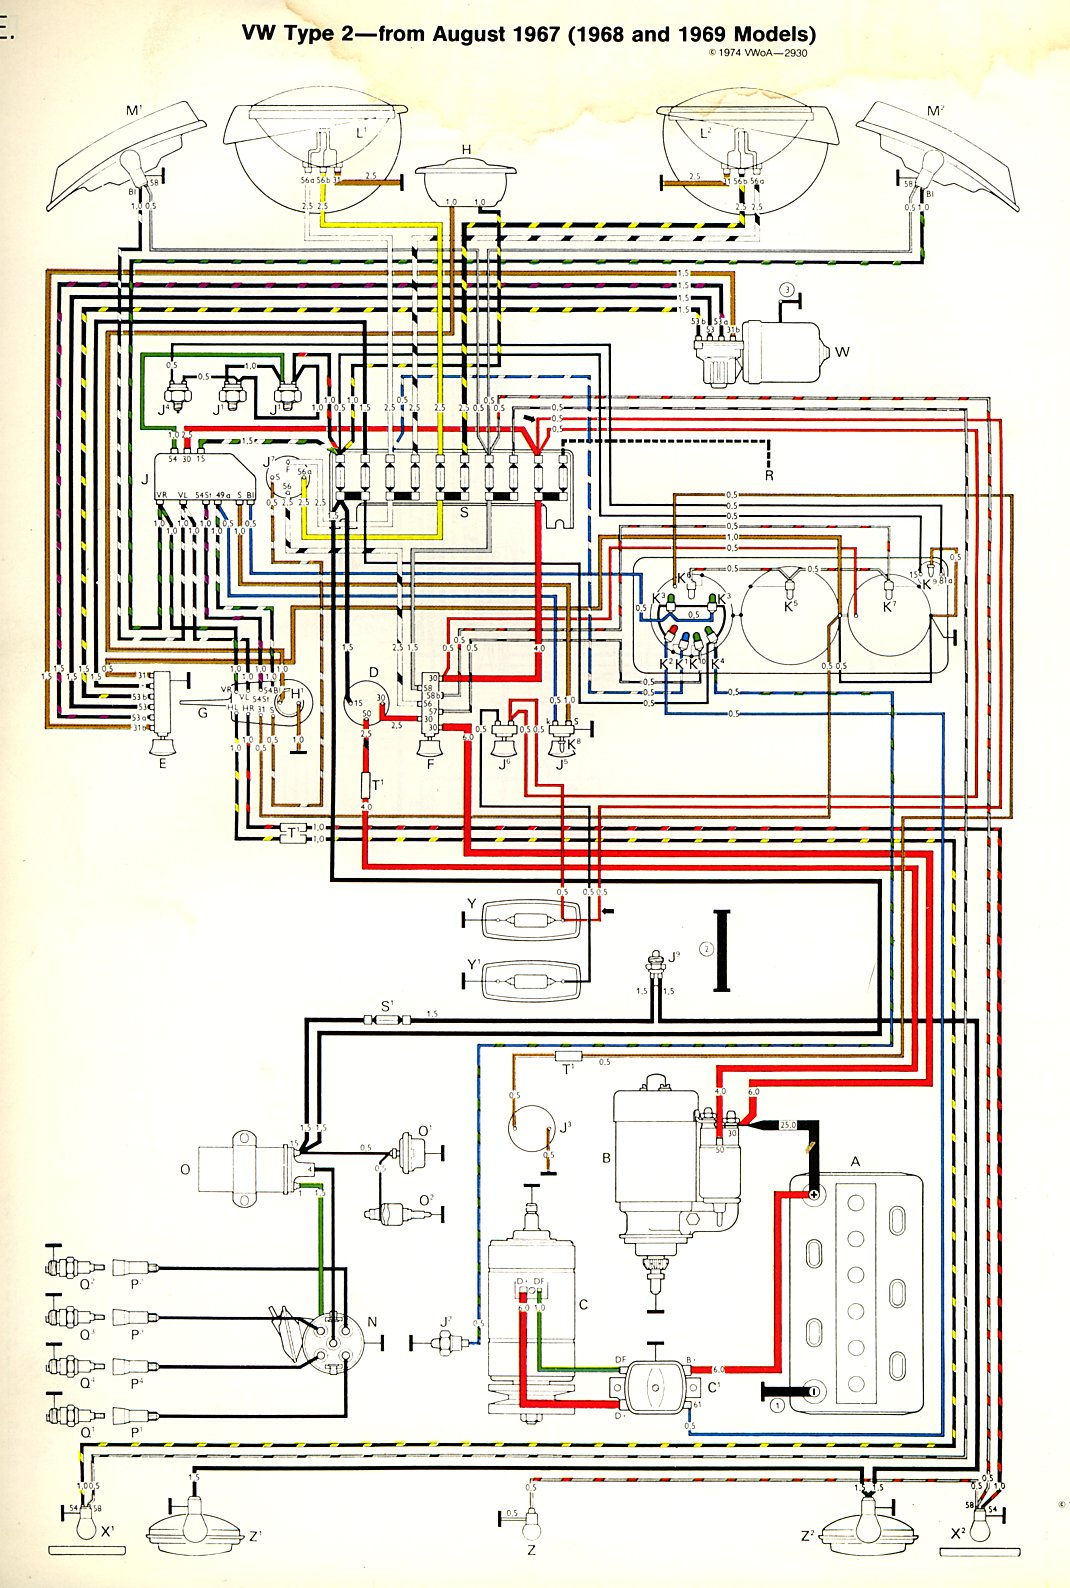 1979 Vw Wiring Diagram Browse Data Generator Thesamba Com Type 2 Diagrams Chevy